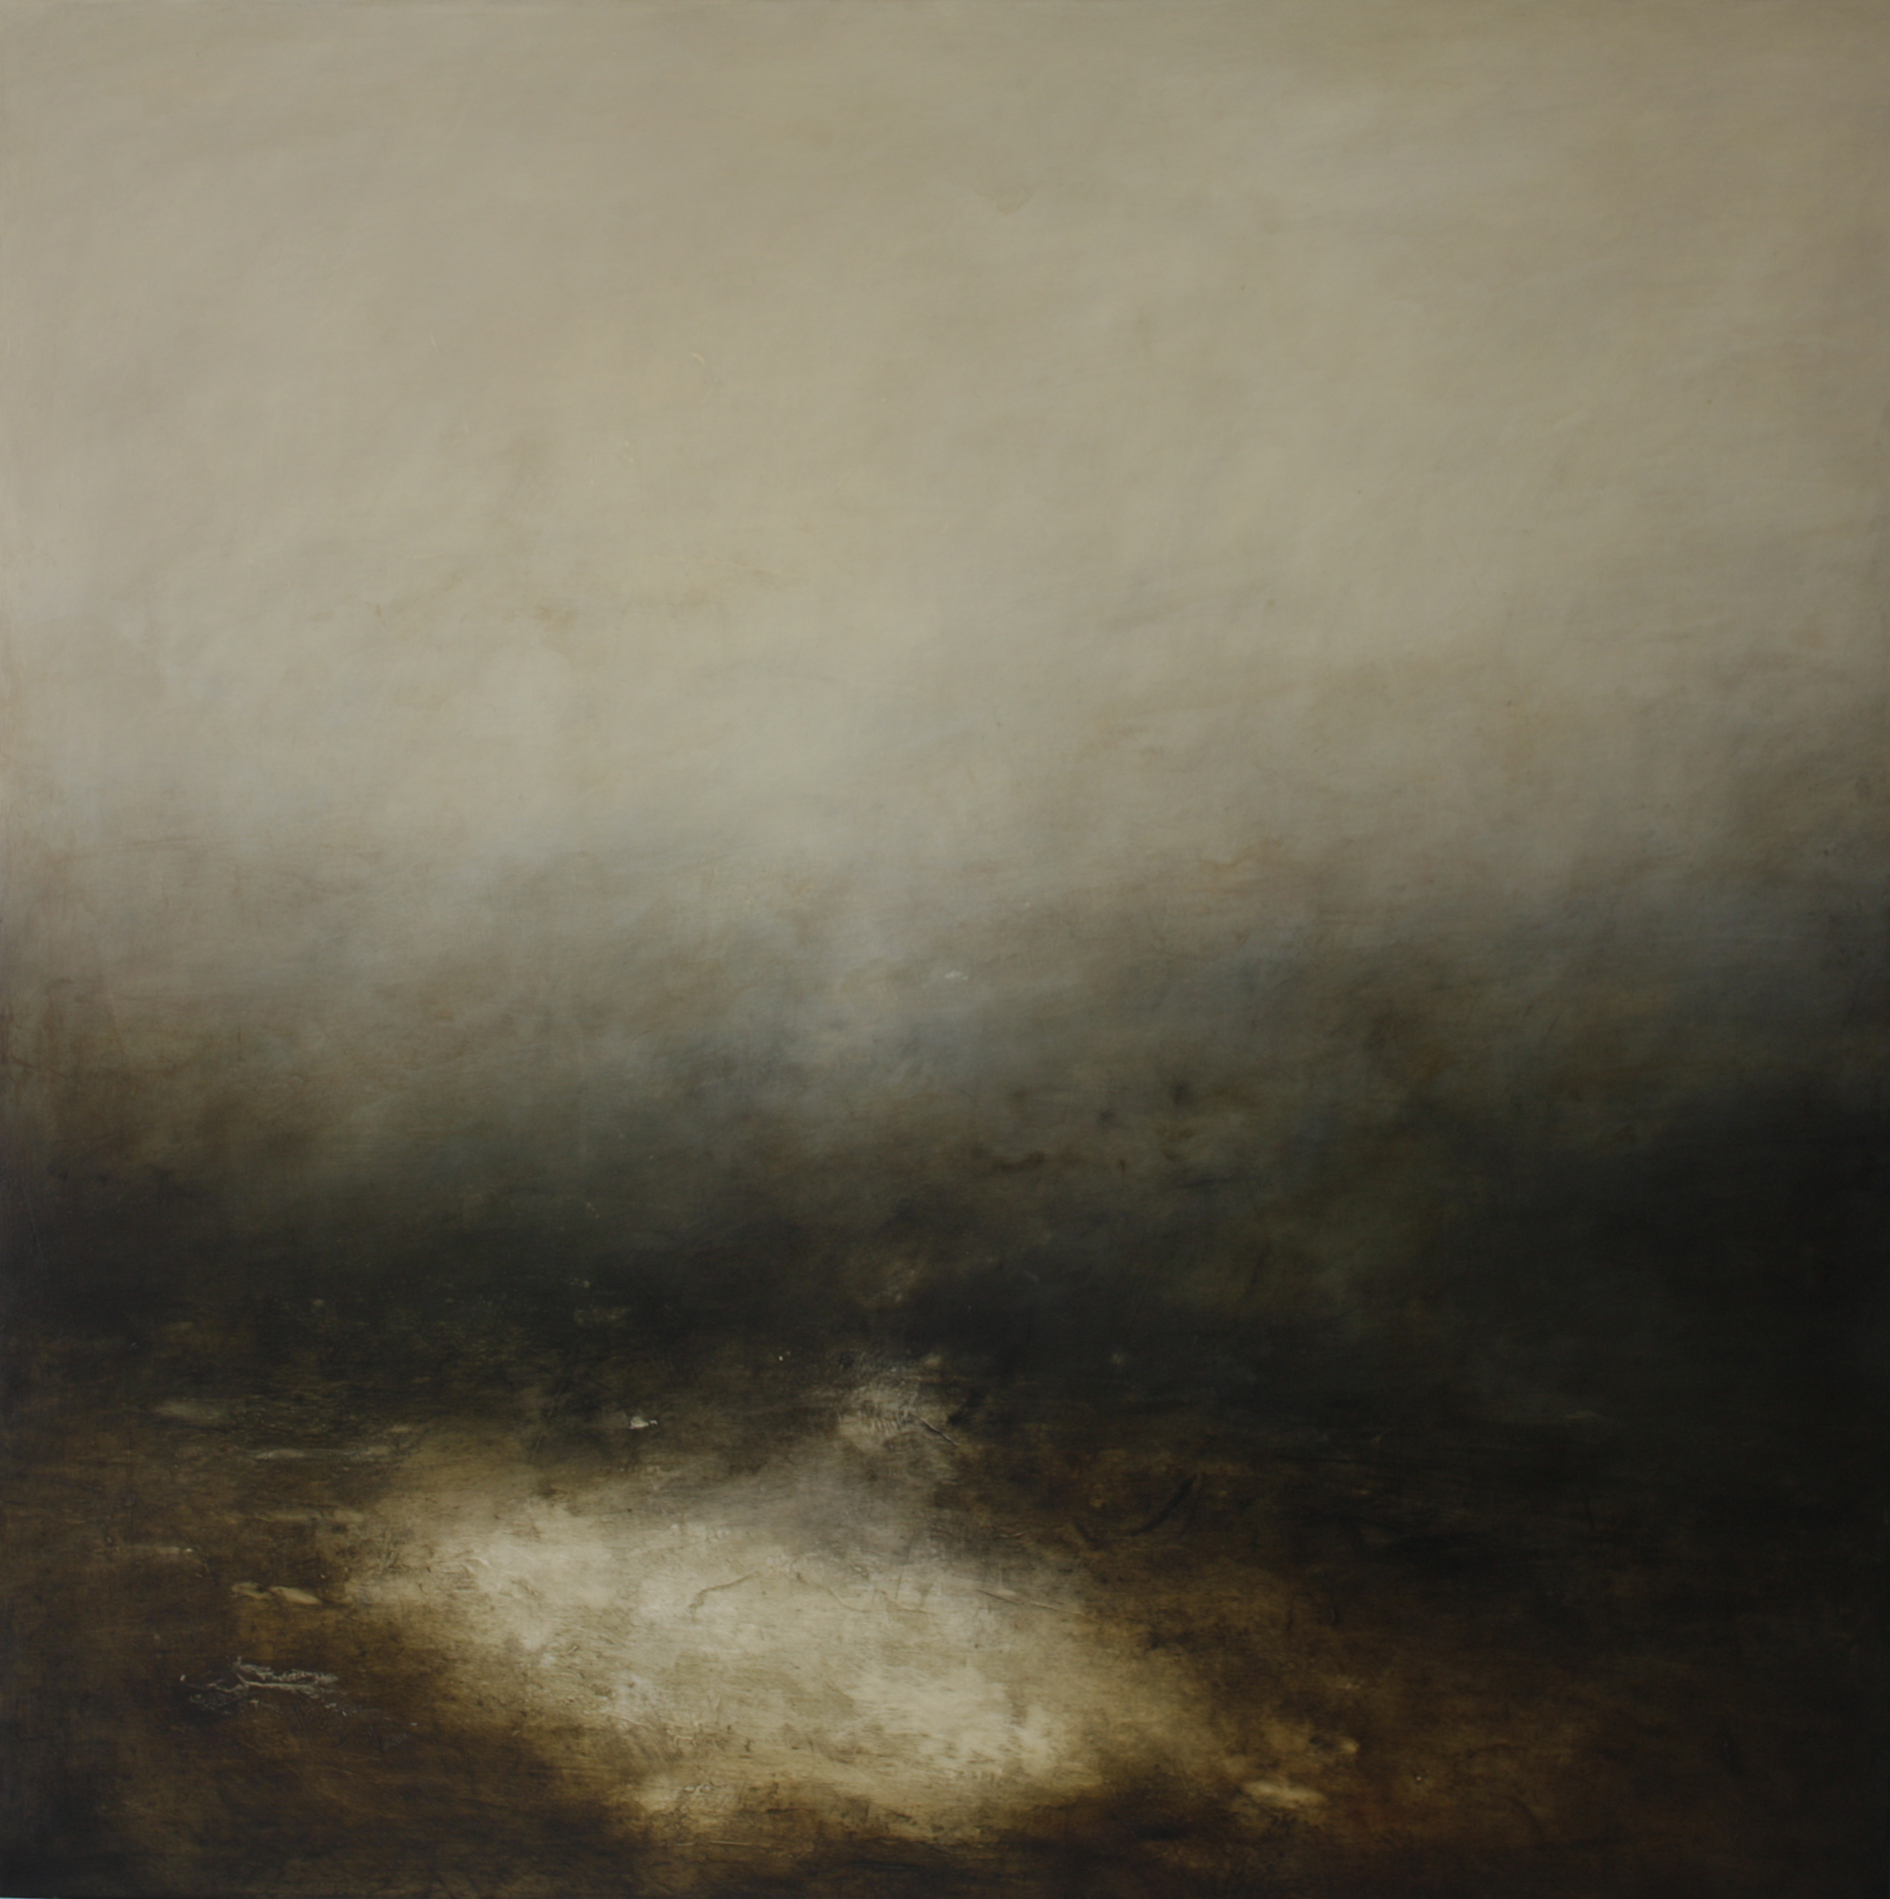 Artist: Victoria Graimes  Title: Hinterland  Size: 130cm x 130cm  Medium: oil on canvas  Price: £4000